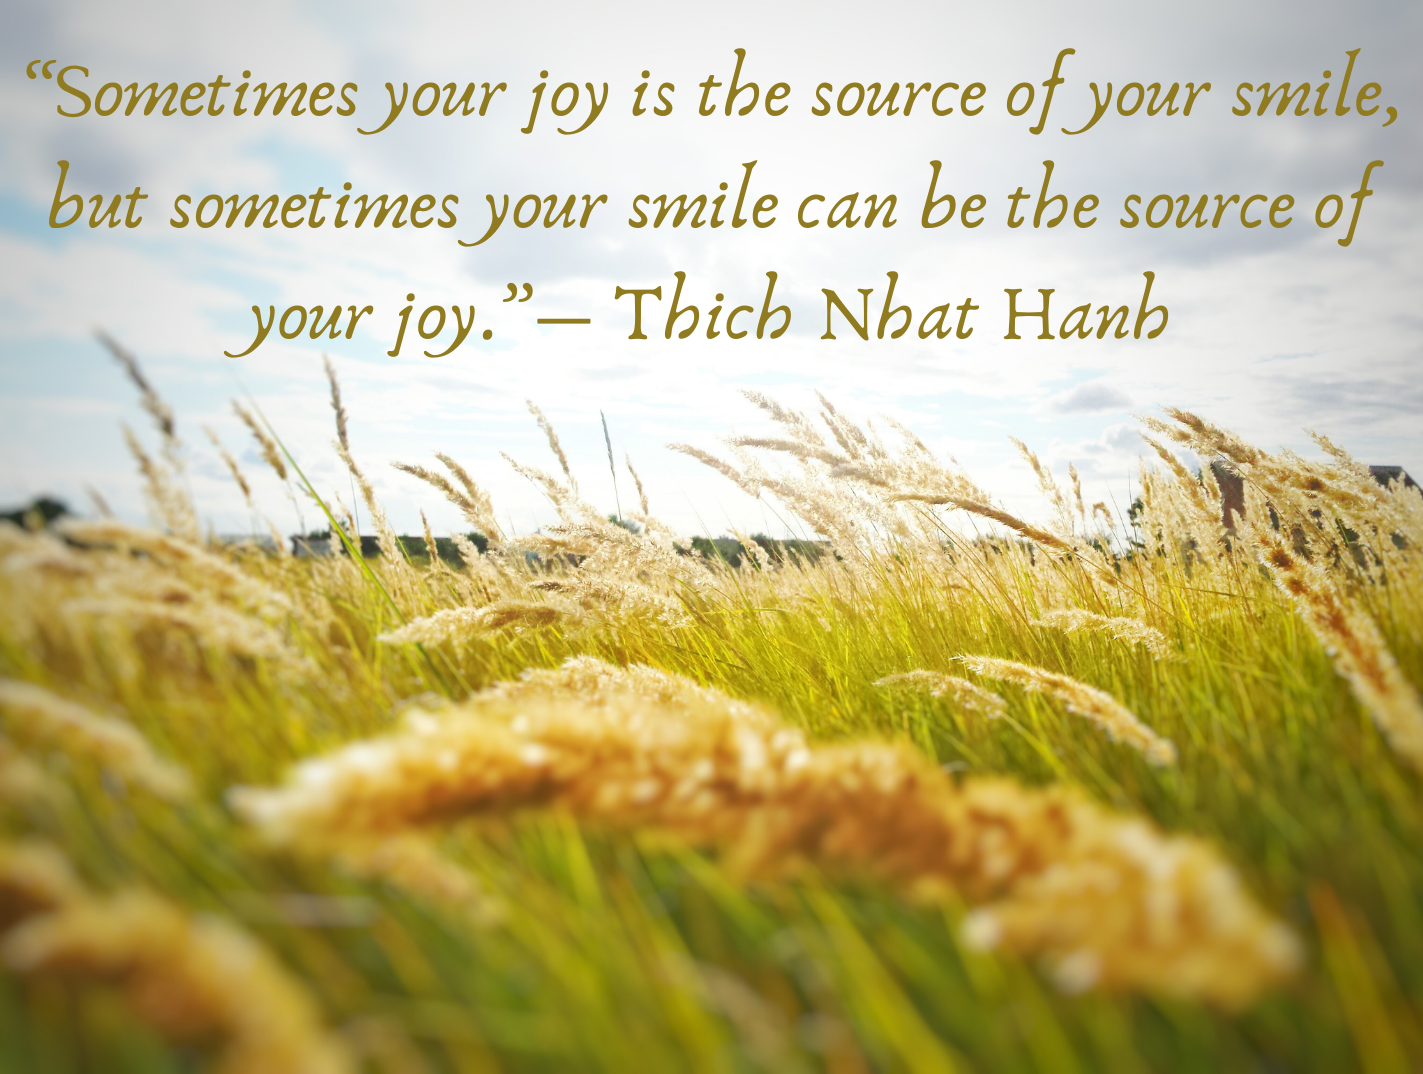 """""""Sometimes your joy is the source of your smile, but sometimes your smile can be the source of your joy.""""― Thich Nhat Hanh"""